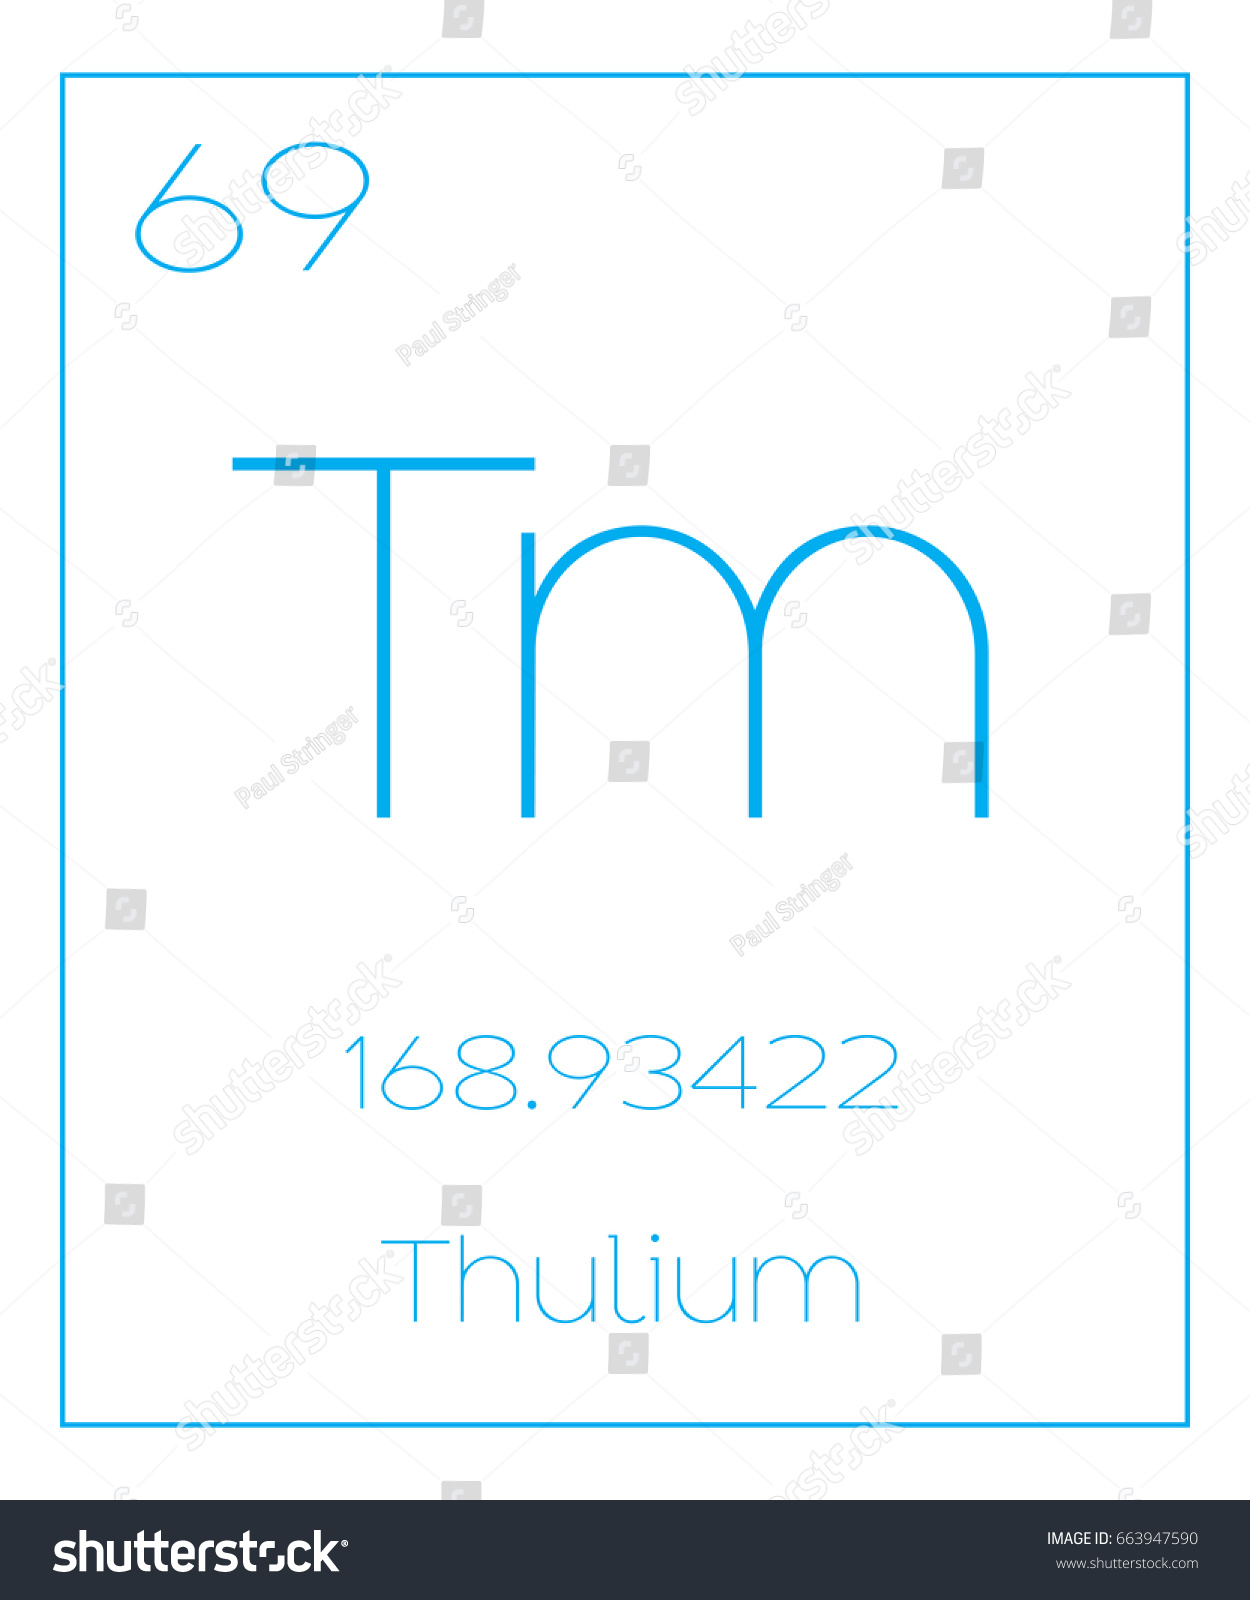 Periodic table thulium gallery periodic table images thulium periodic table images periodic table images periodic table thulium images periodic table images illustration periodic gamestrikefo Gallery